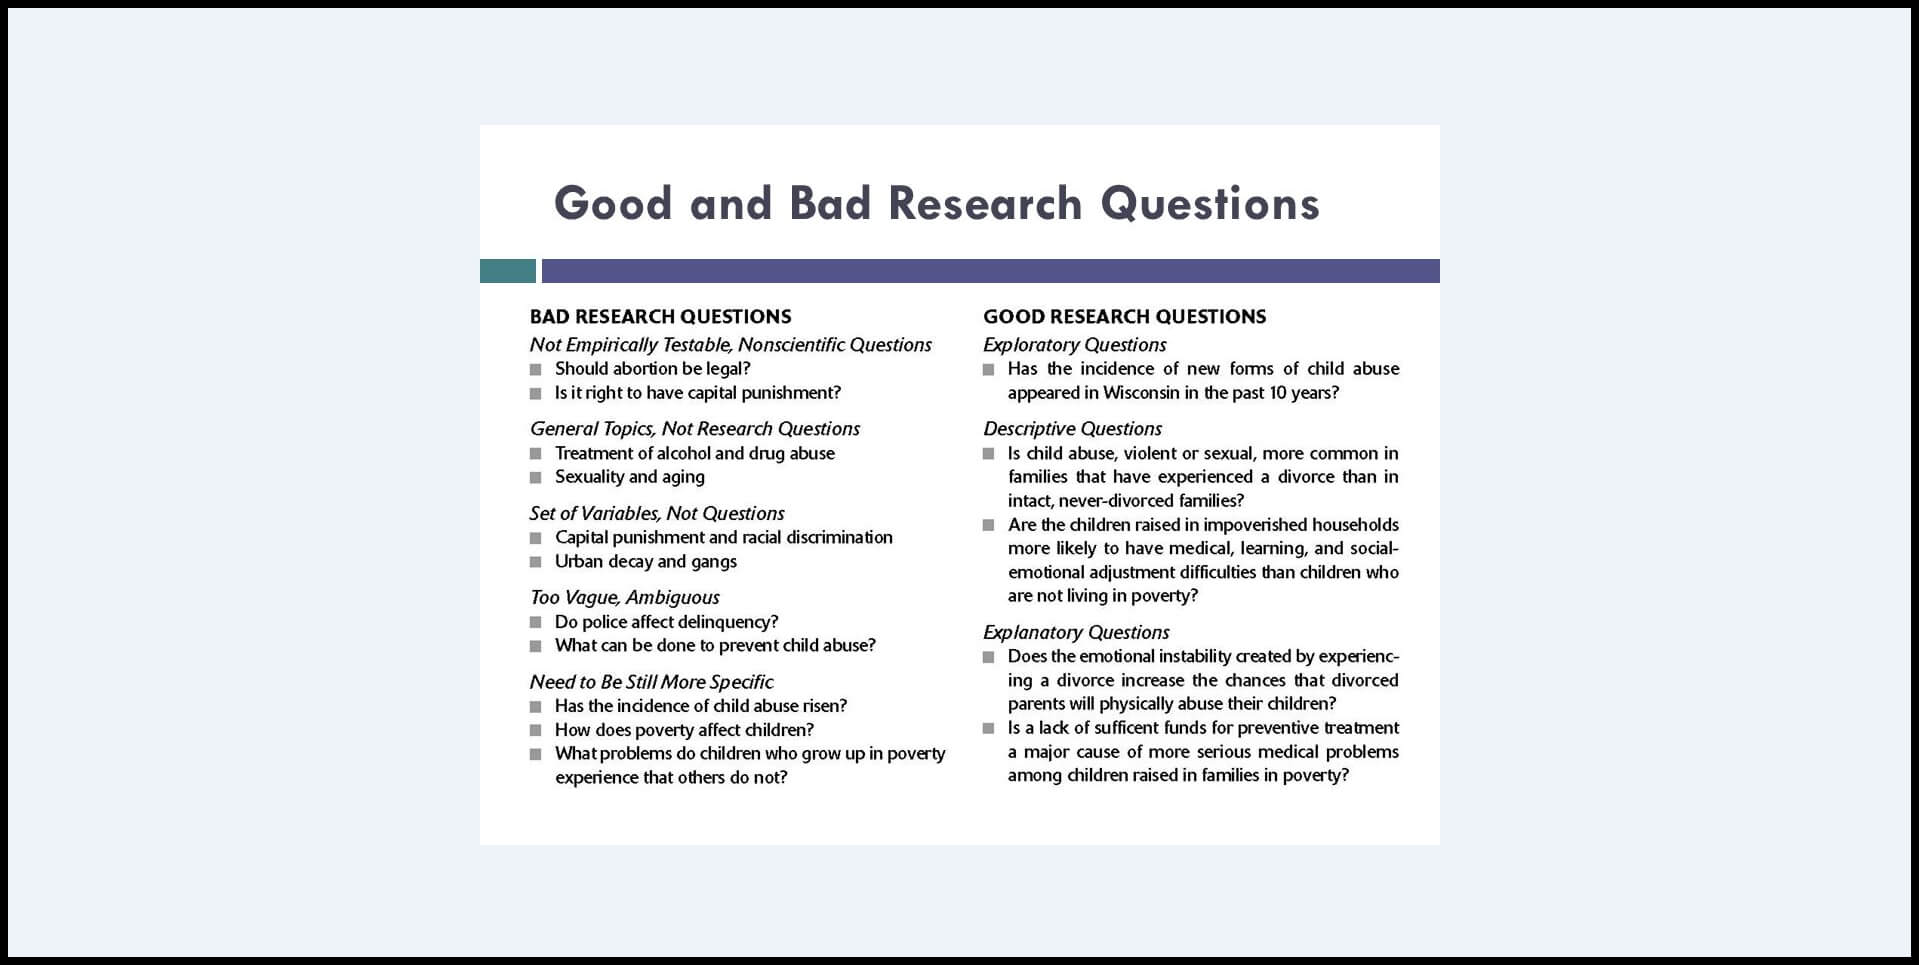 016 Research Question Examples Controversial Issues Paper Amazing Topics Full